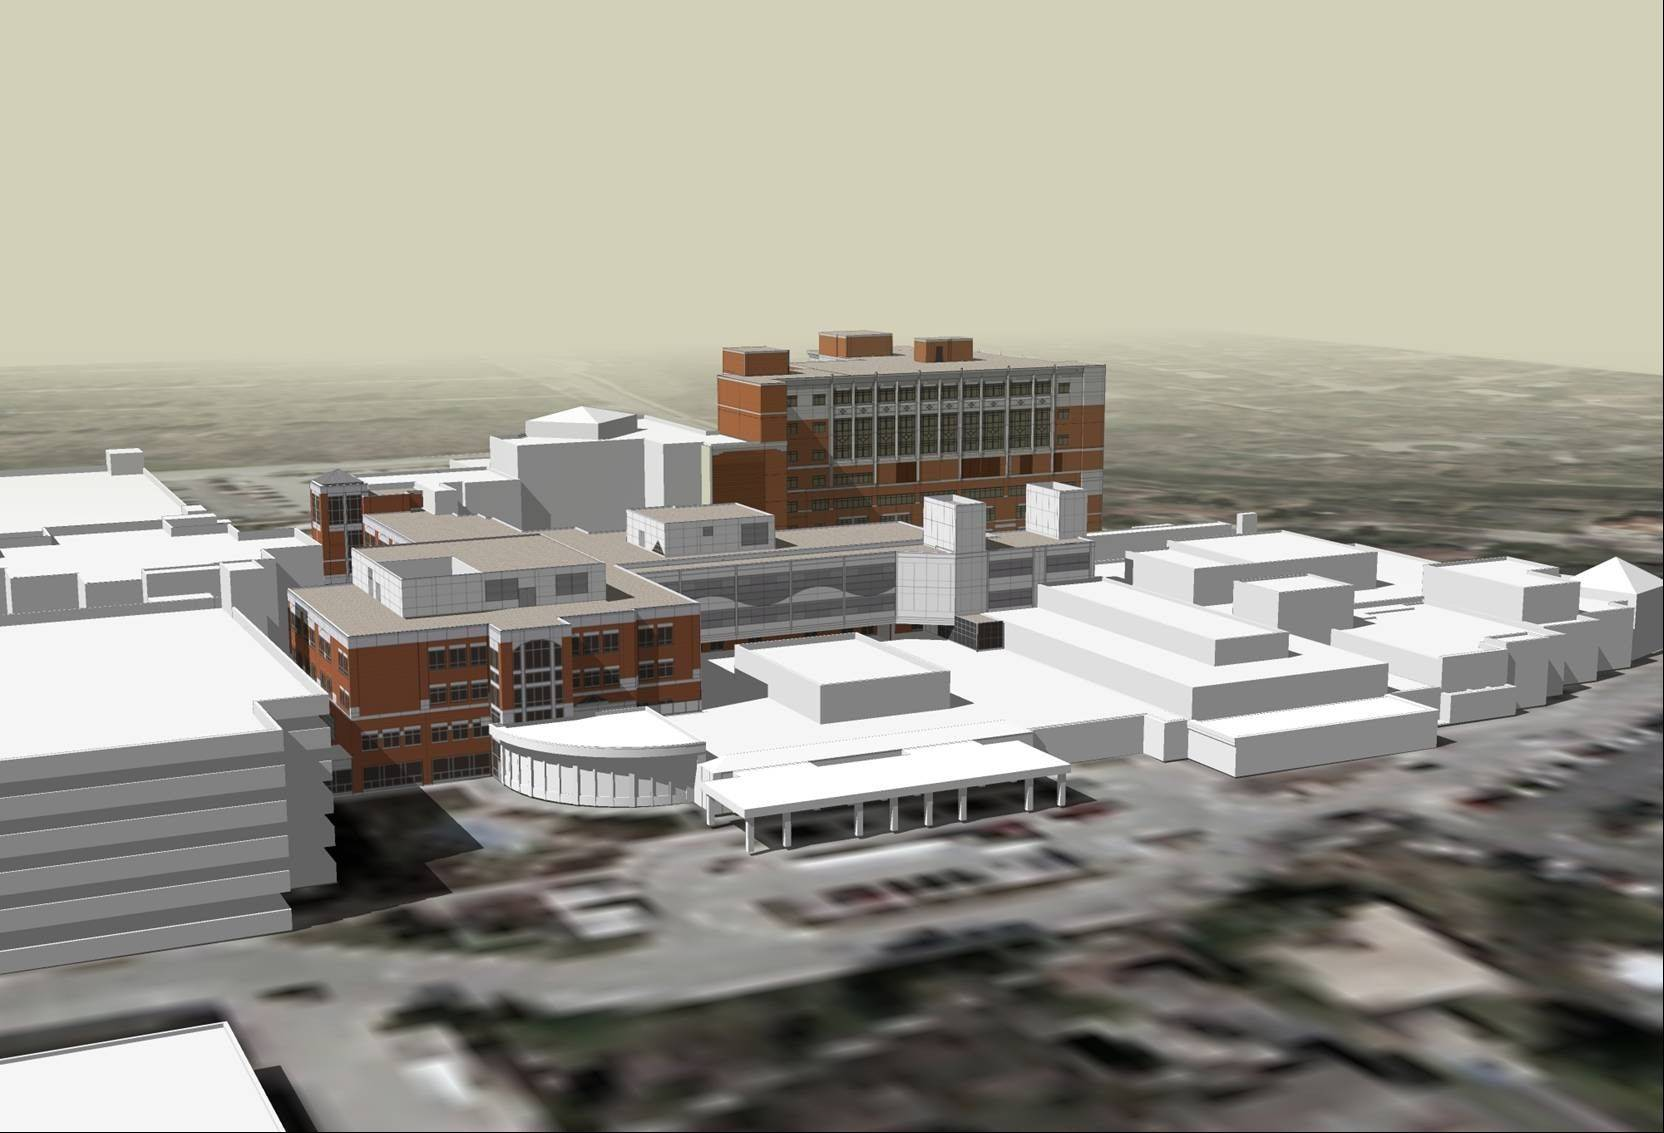 Edward Hospital's $63.7 million expansion wins approval